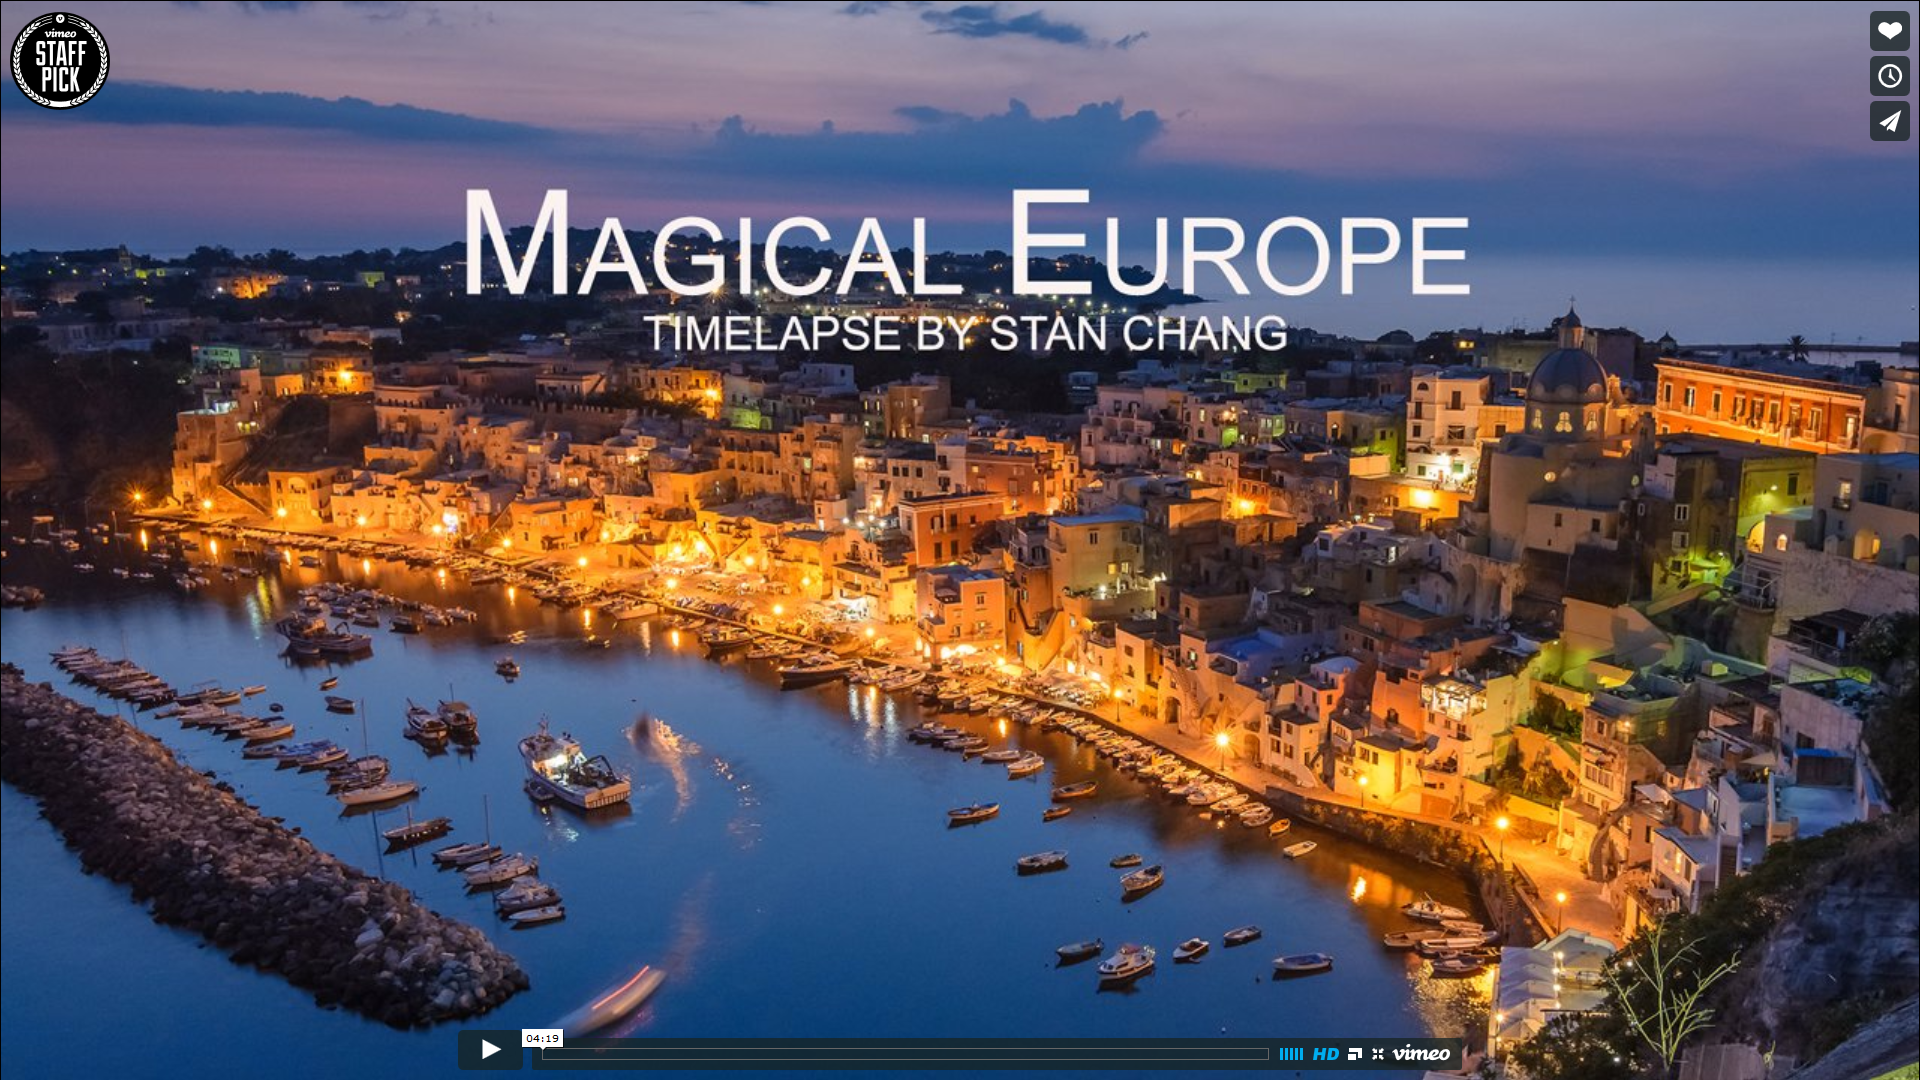 [Timelapse] Magical Europe